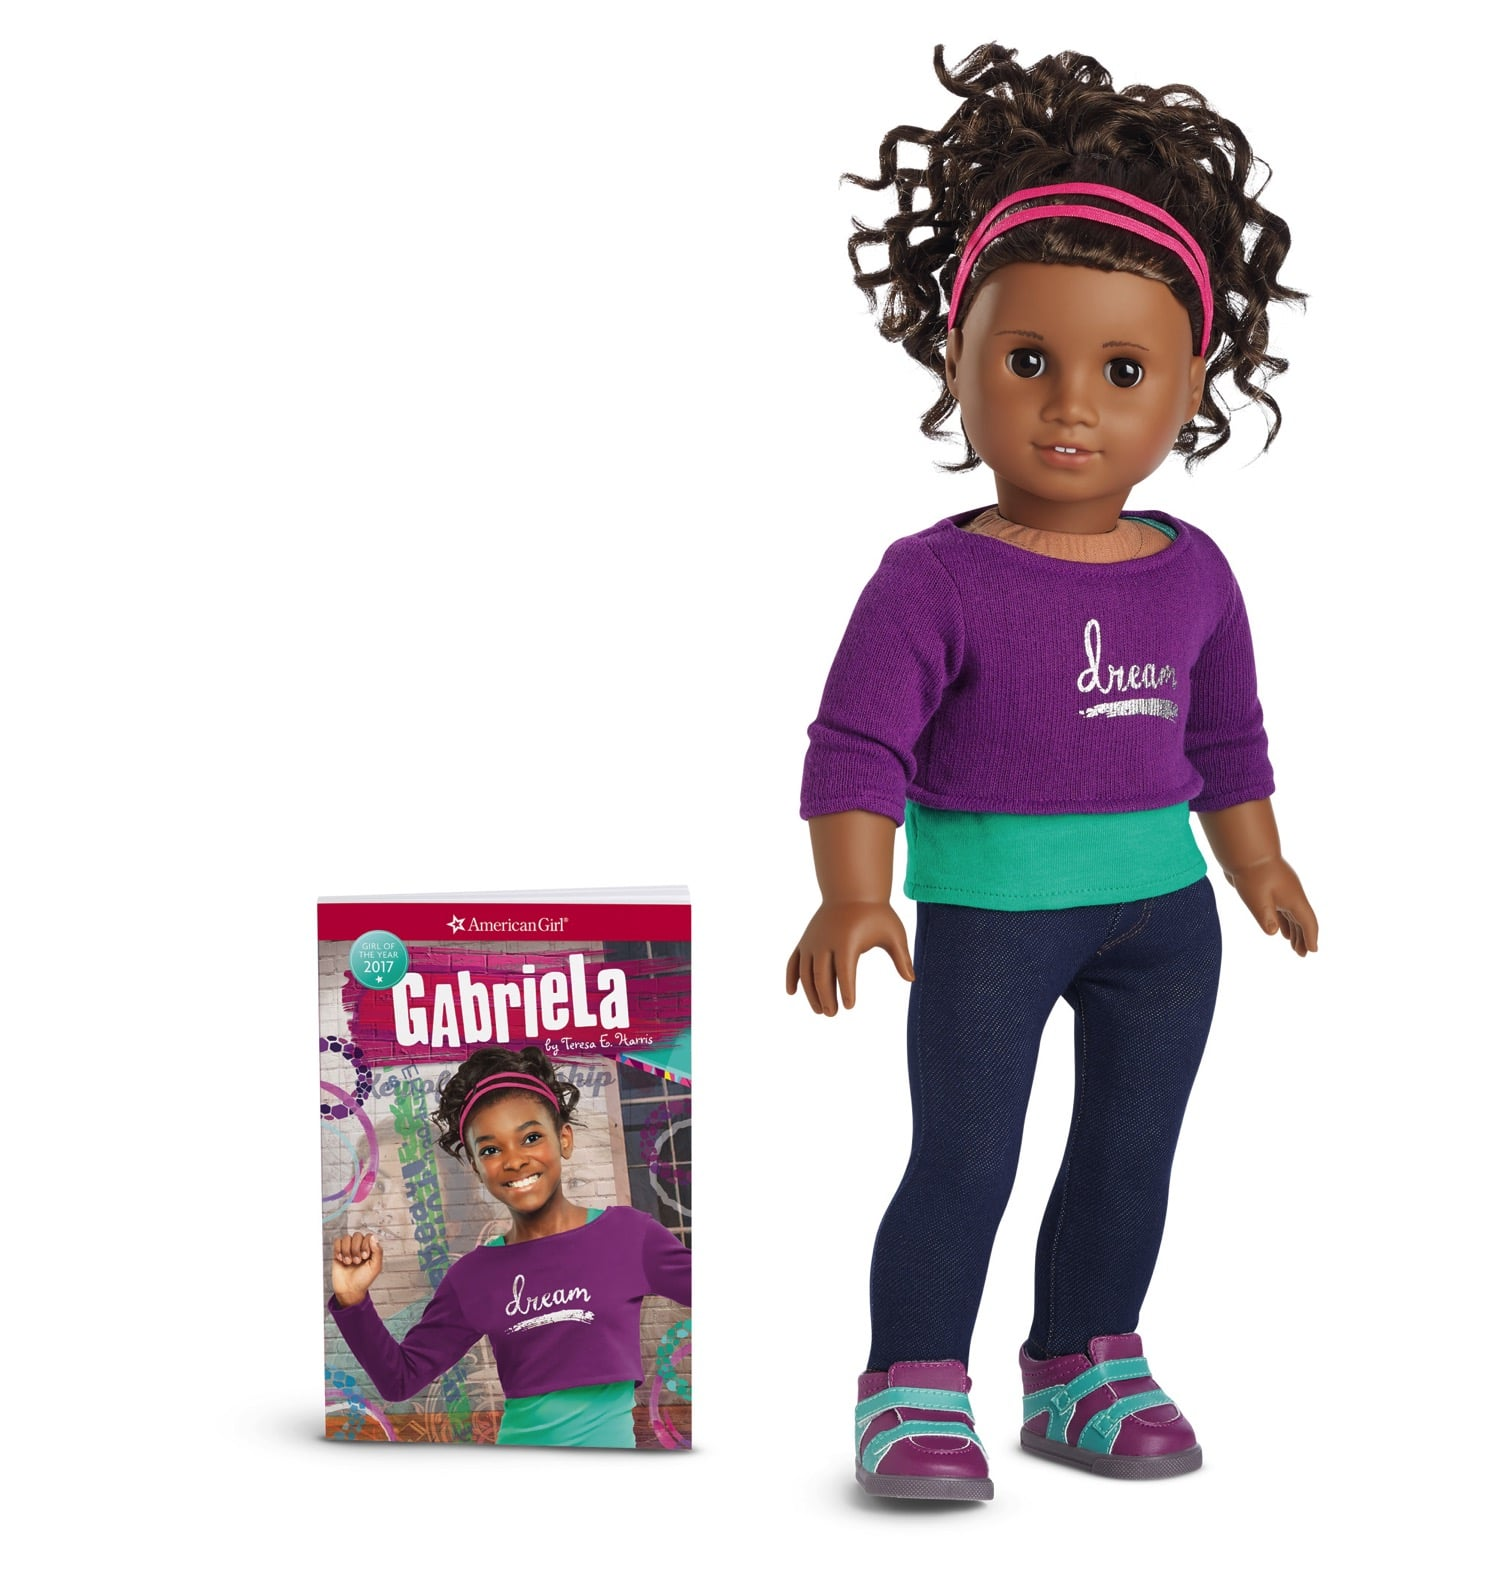 Gabriela Doll and Book LR